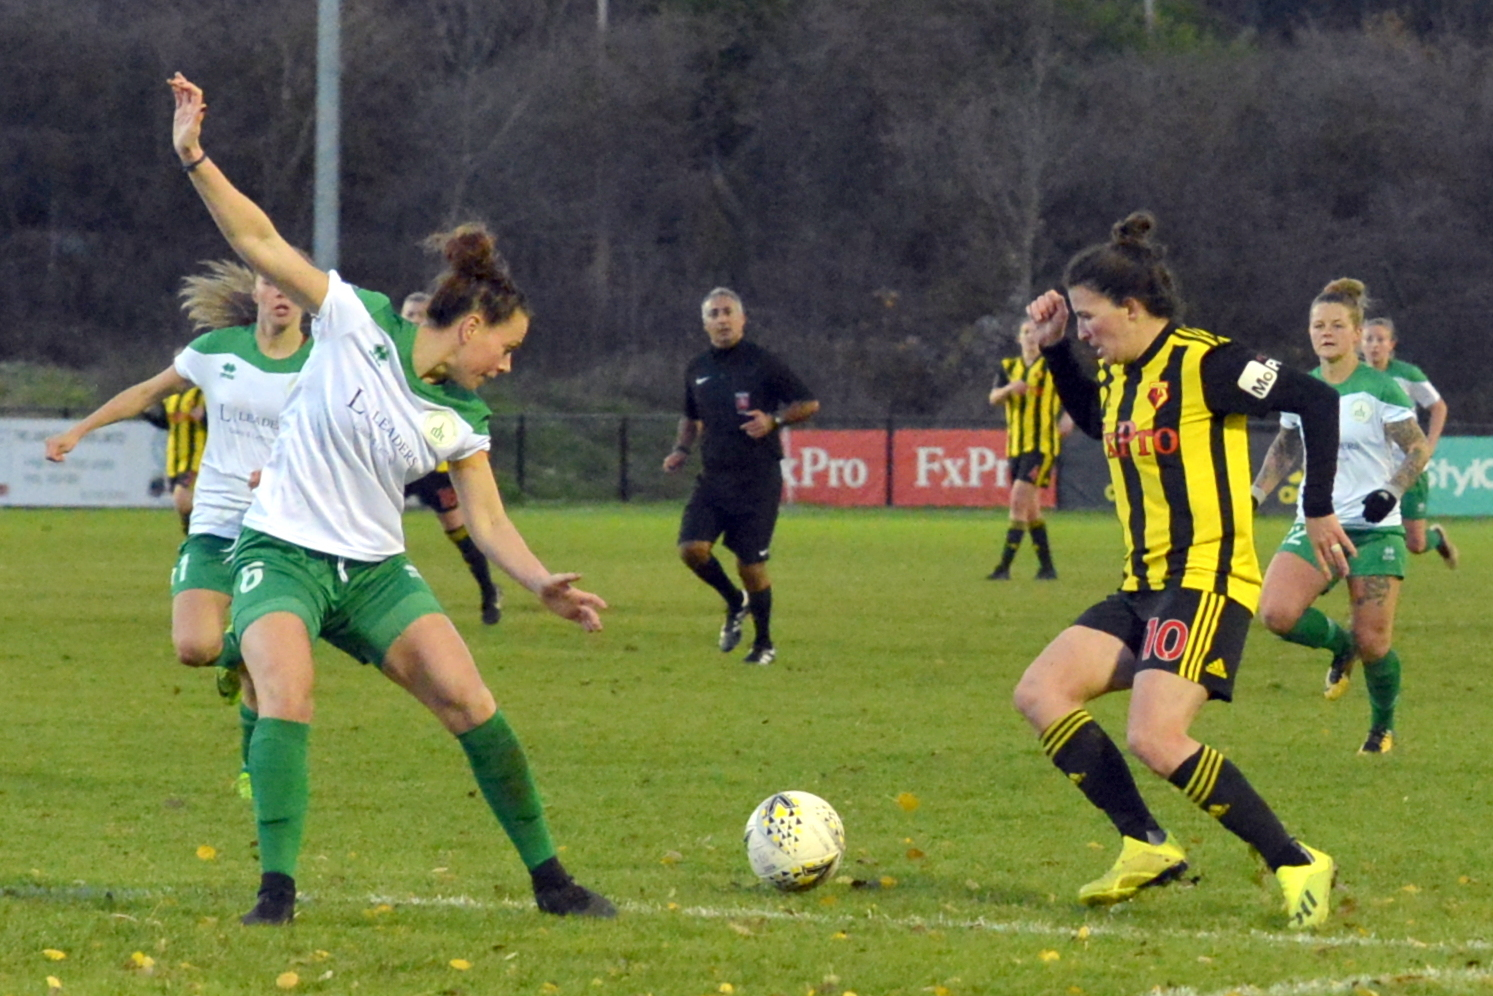 Watford Ladies will begin their 2019/20 campaign with an away trip to Portsmouth